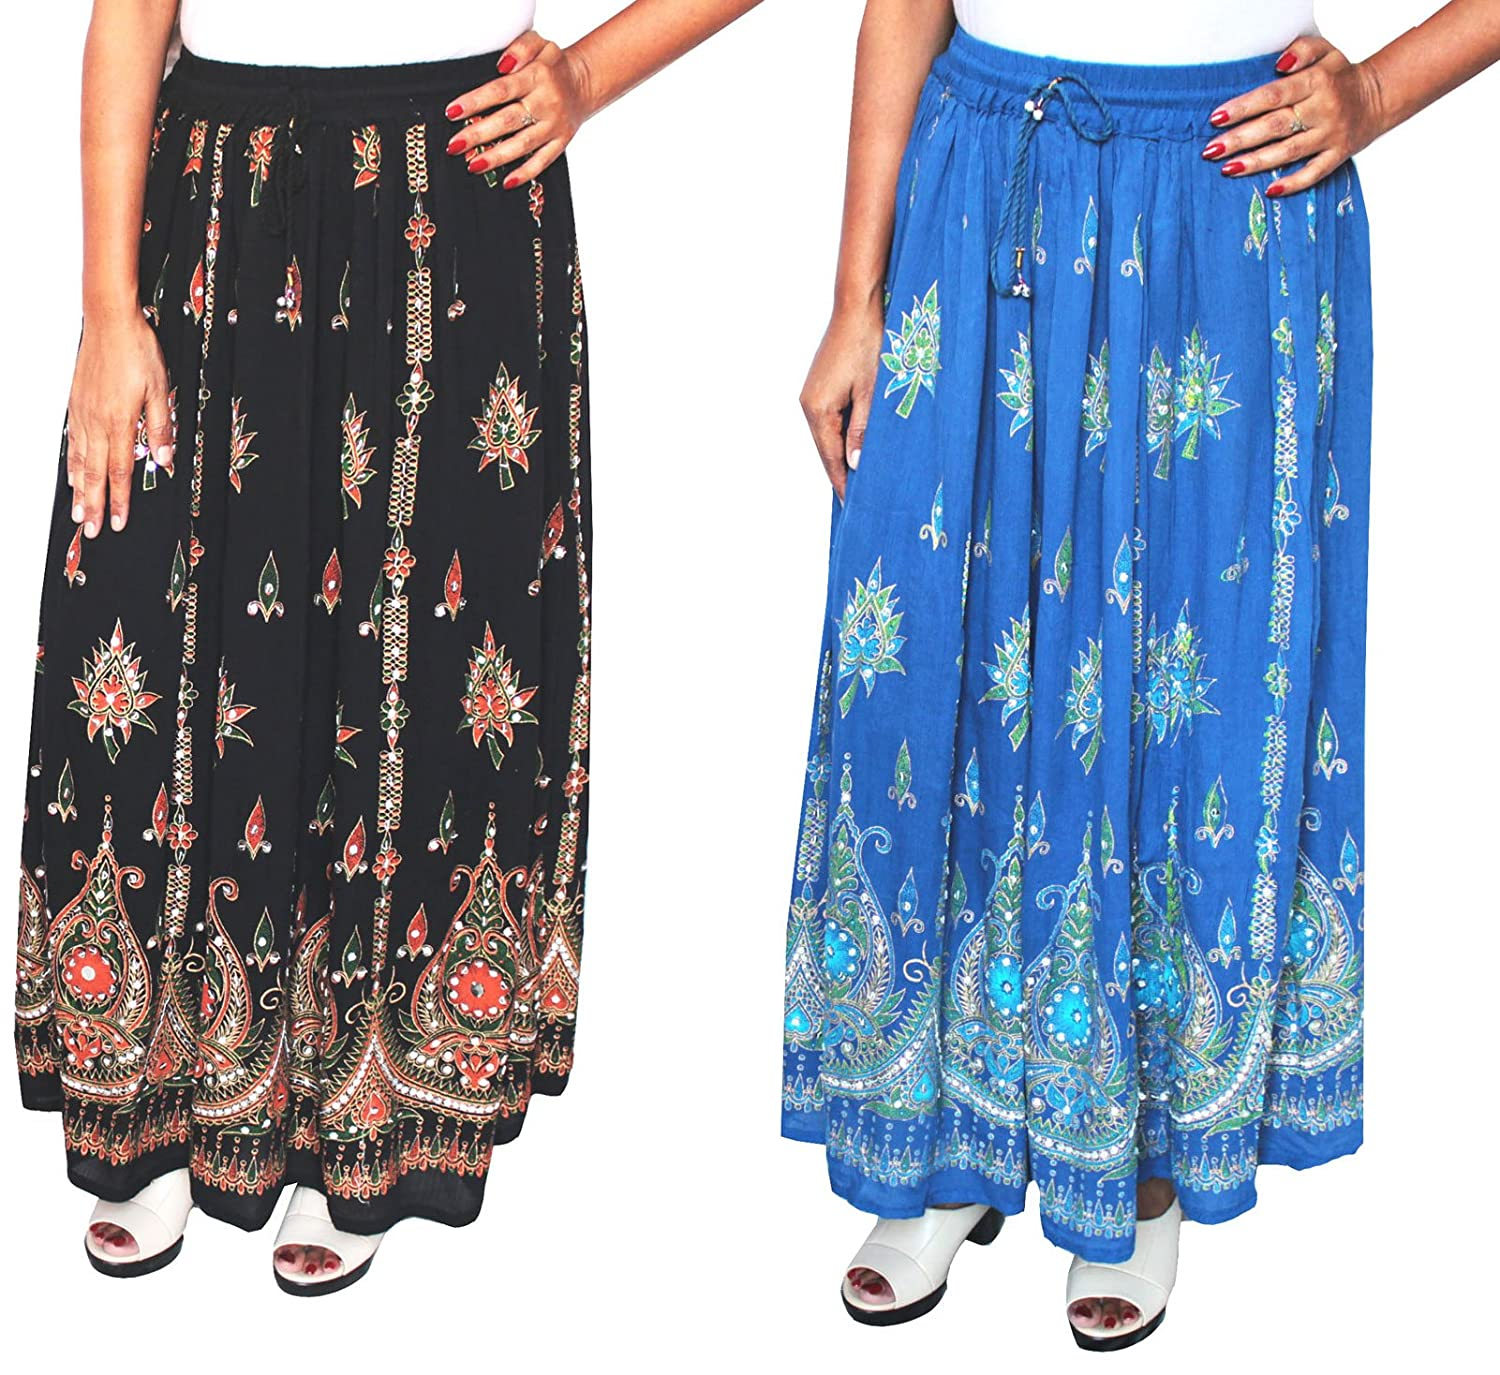 Maple Clothing Women's Long Skirts Sequins Ankle Length Rayon Indian Clothing One Size) lngsktd217122a-bl